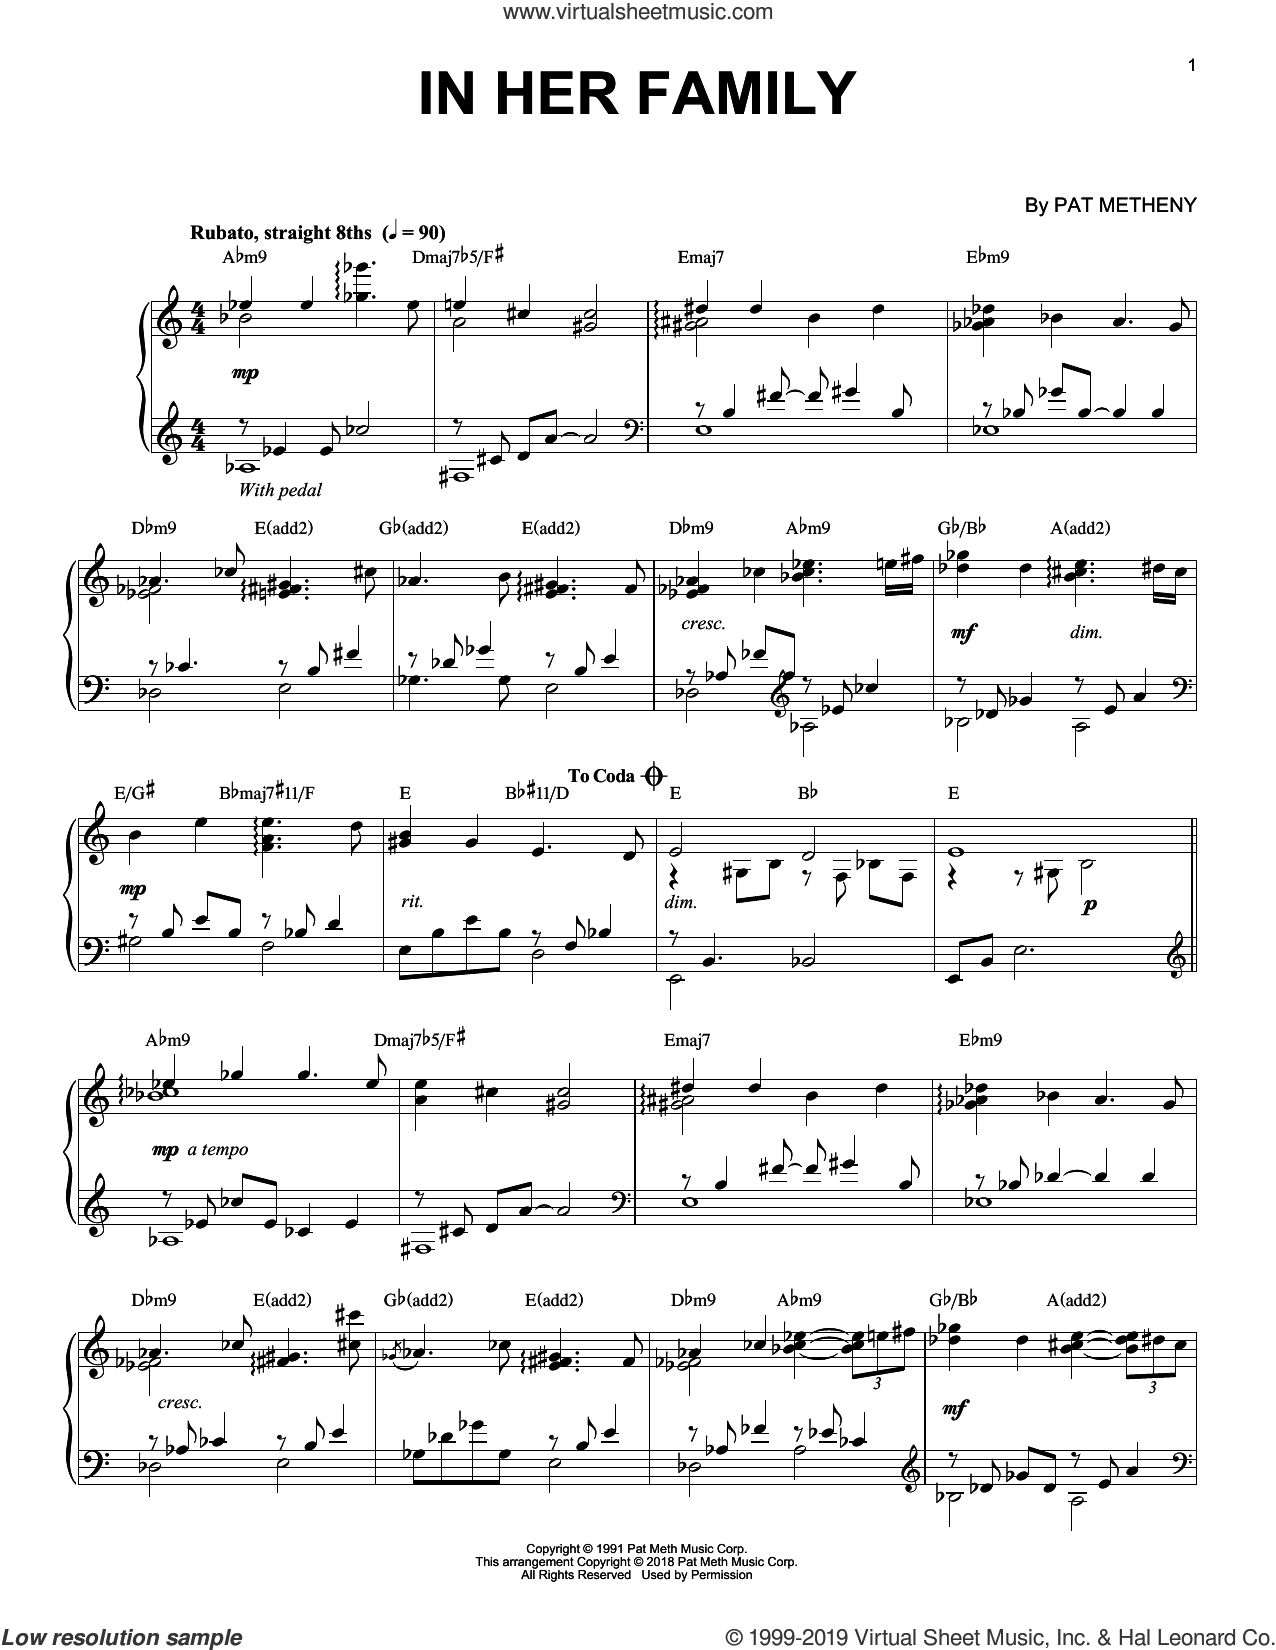 In Her Family sheet music for piano solo by Pat Metheny, intermediate skill level